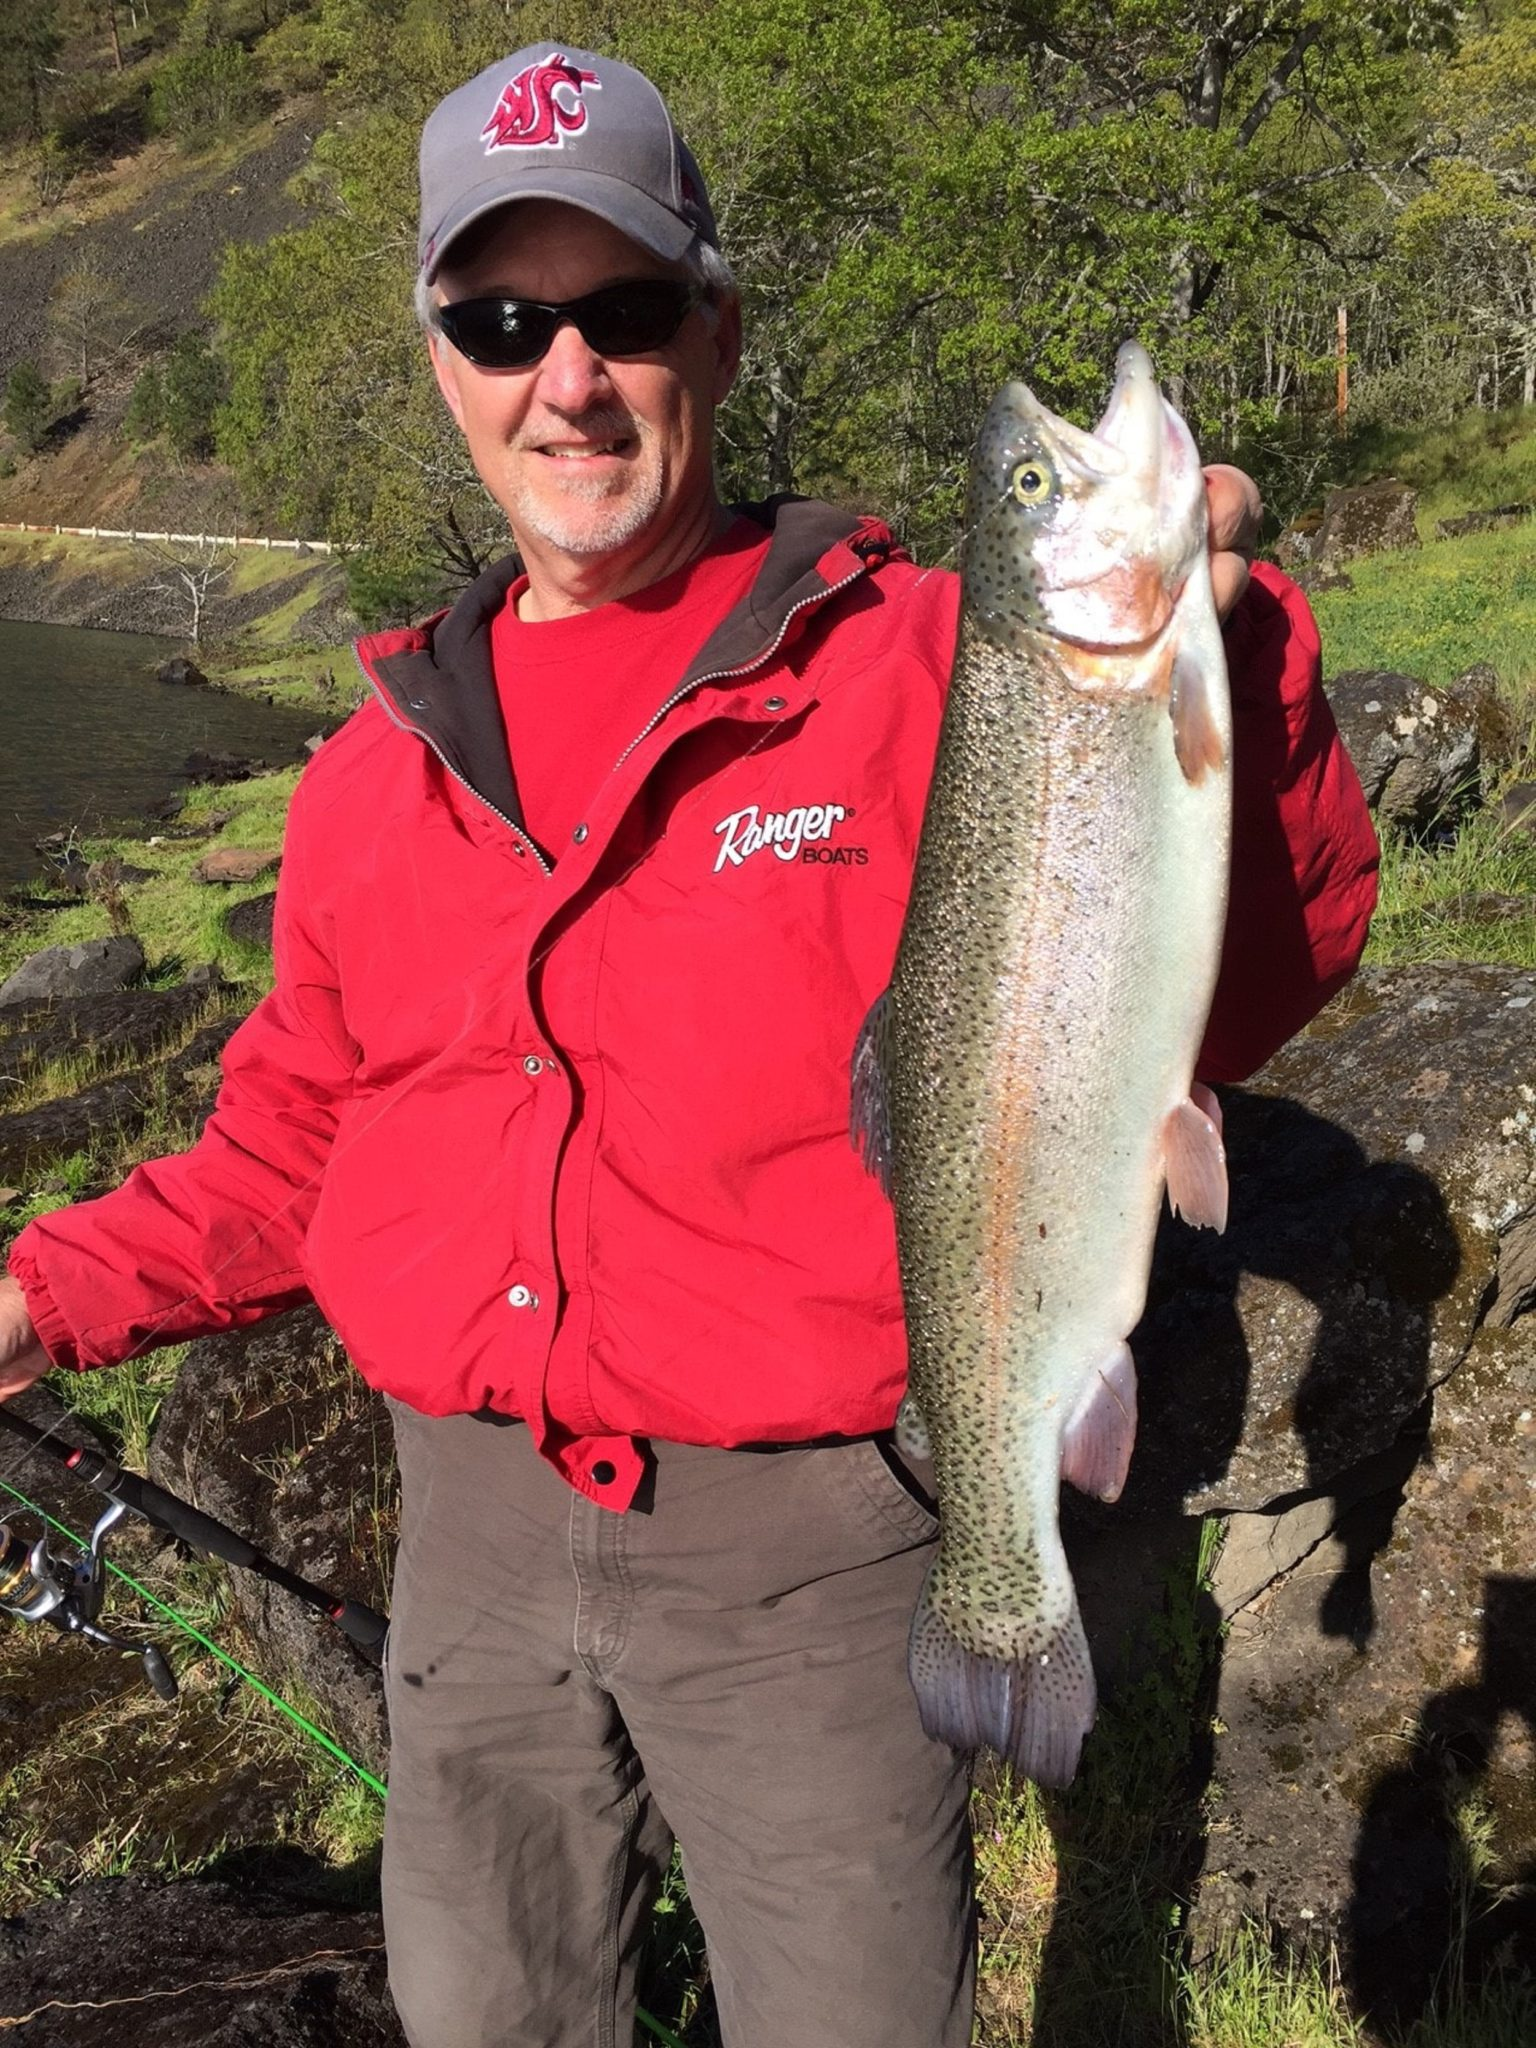 Rainbows And More To Catch On Eastside Trout Opener, Y-R Lakes